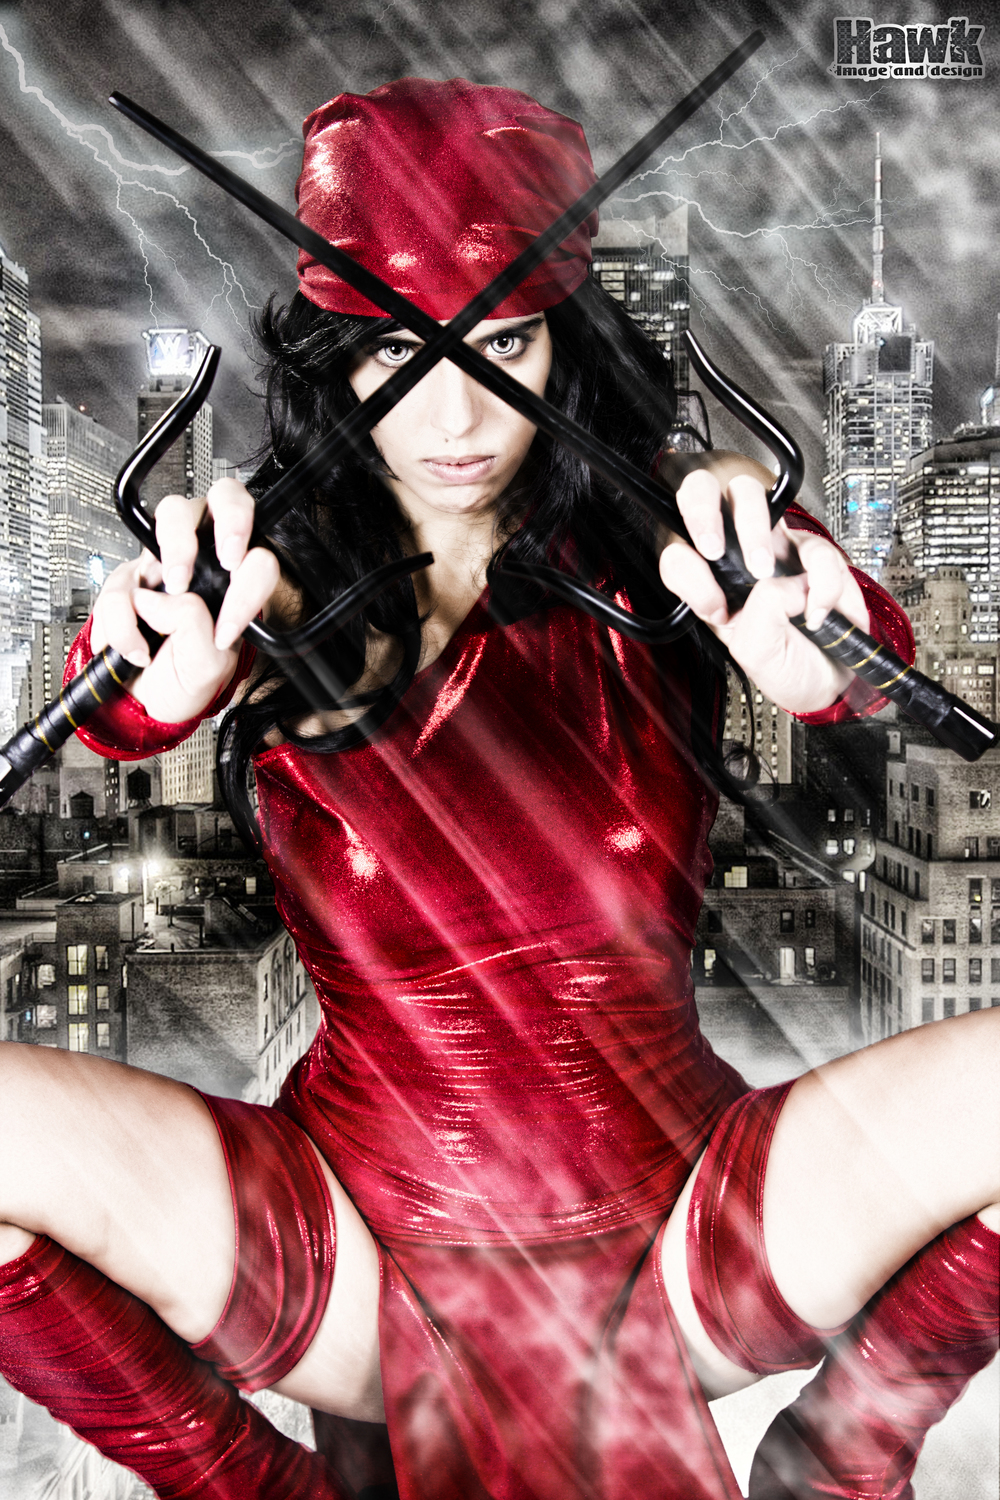 Larxenne is Elektra | Photo by: Hawk Image and Design